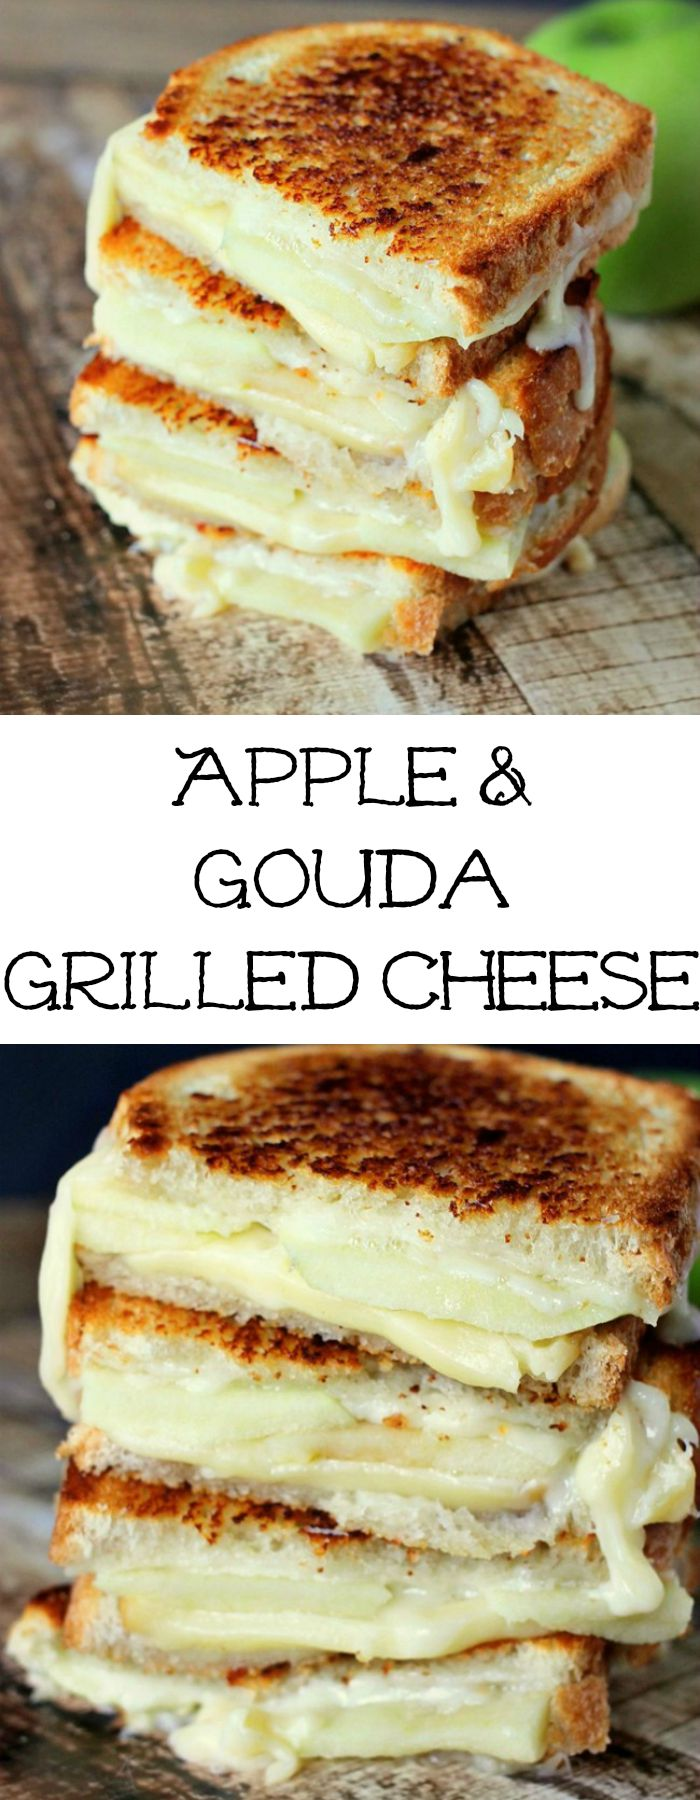 "Apple & Gouda Grilled Cheese is perfect for fall and those granny smith apples! Savory and delicious!"" border=""0"" alt=""Apple & Gouda Grilled Cheese is perfect for fall and those granny smith apples! Savory and delicious!"